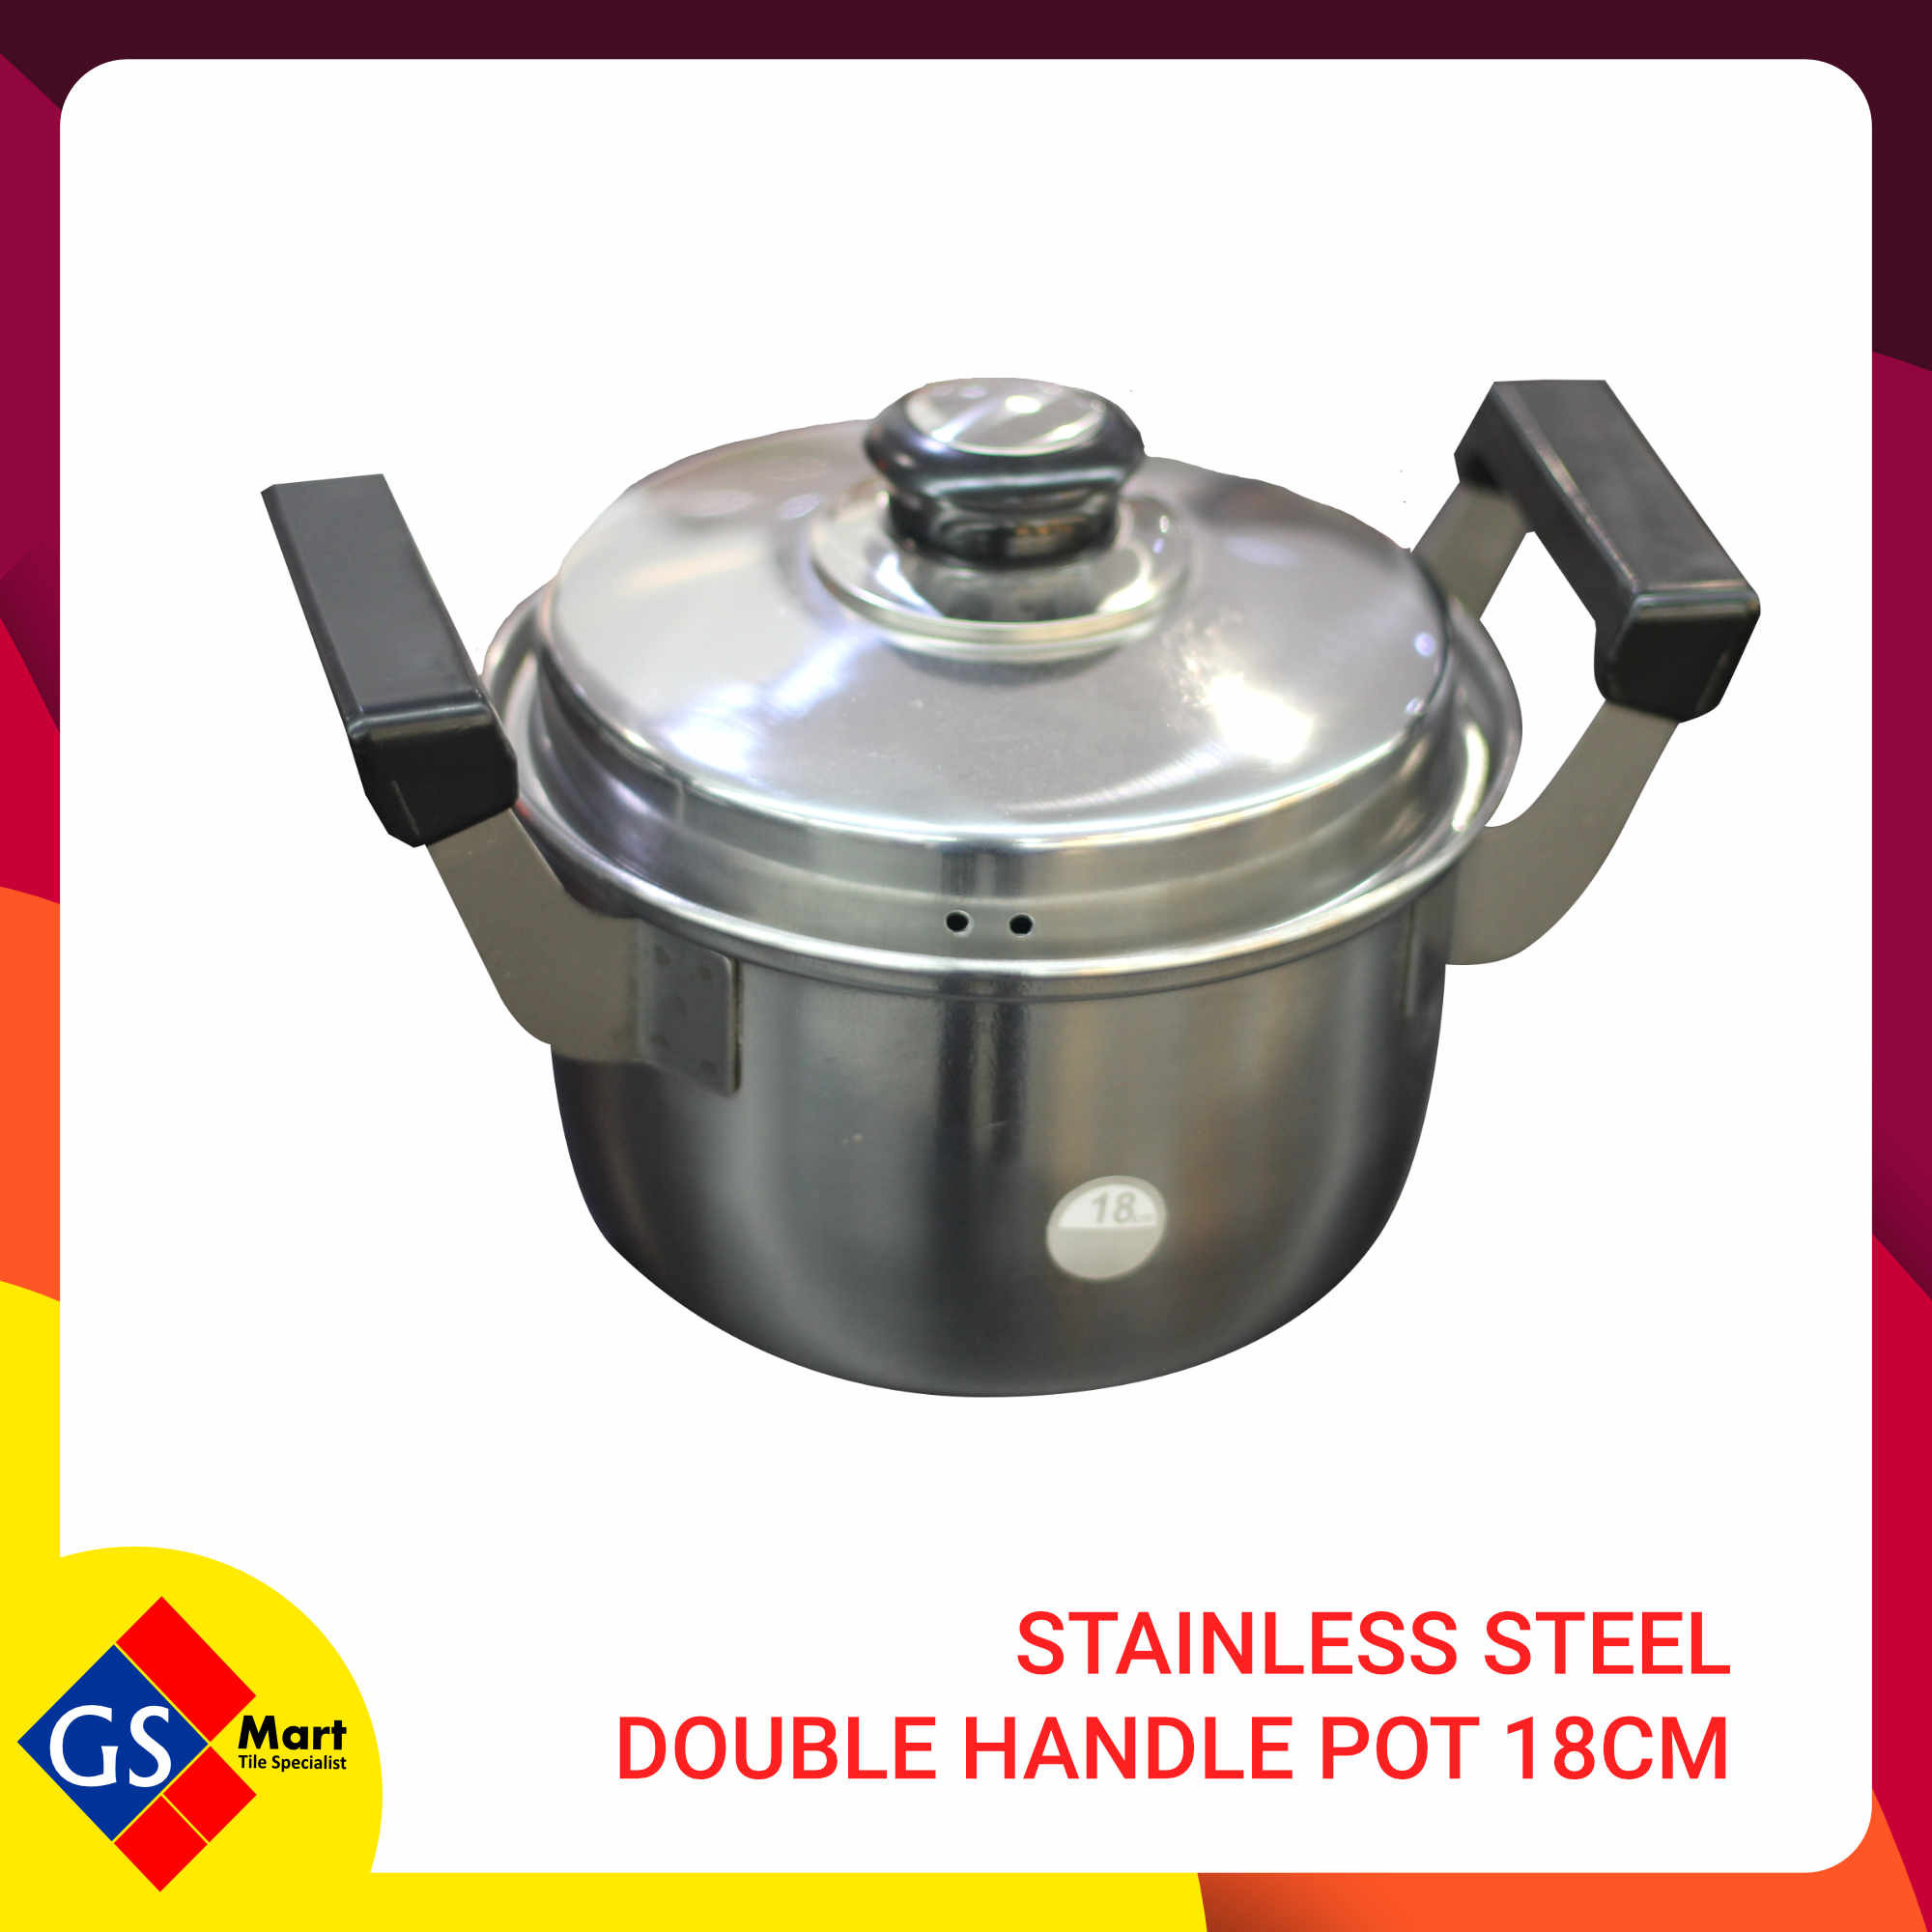 image of Stainless Steel Double Handle Pot